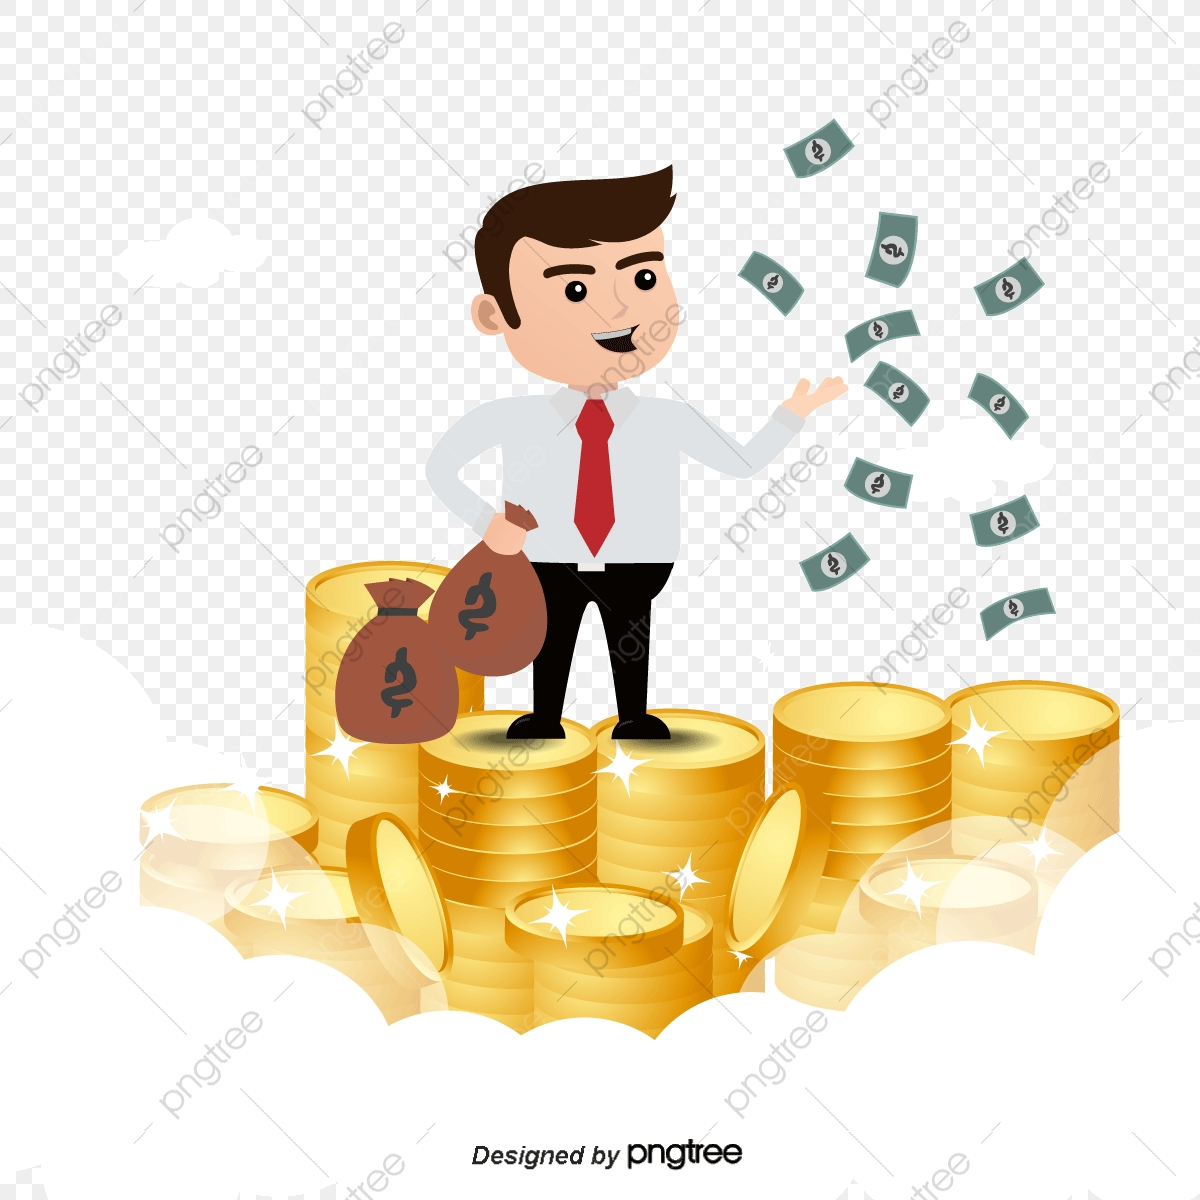 Happy Businessman With Money Vector, Businessman Clipart, Money.